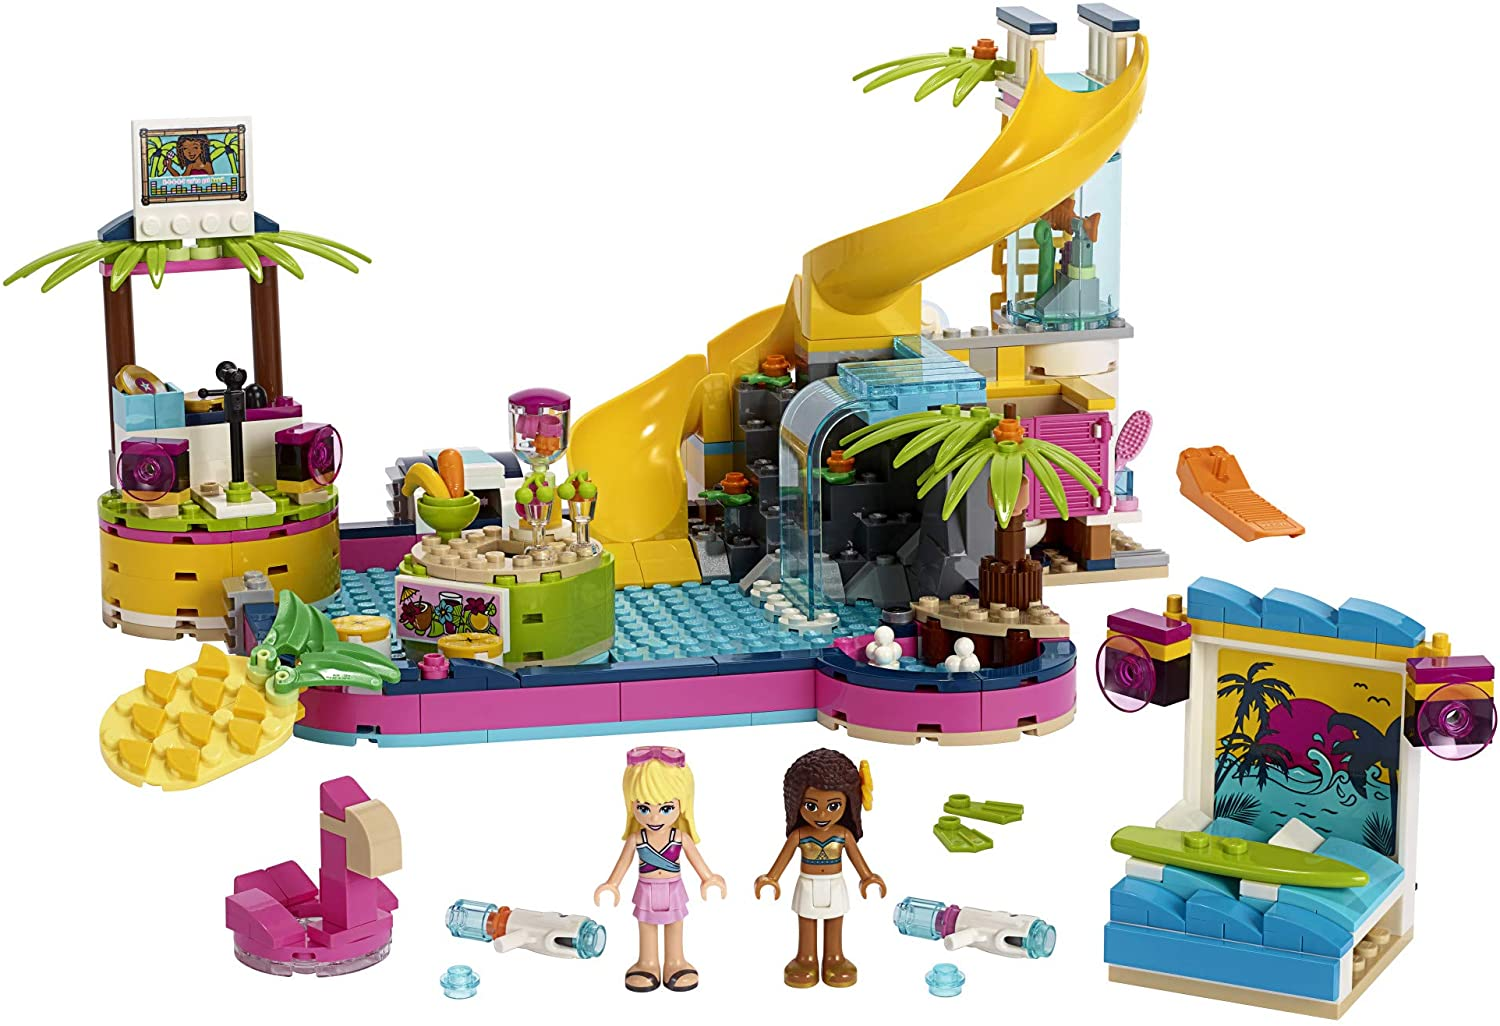 LEGO Friends Andrea\'s Pool Party 41374 Toy Pool Building Set with Andrea and Stephanie Mini Dolls for Pretend Play, Includes Toy Juice Bar and Wave Machine (468 Pieces)